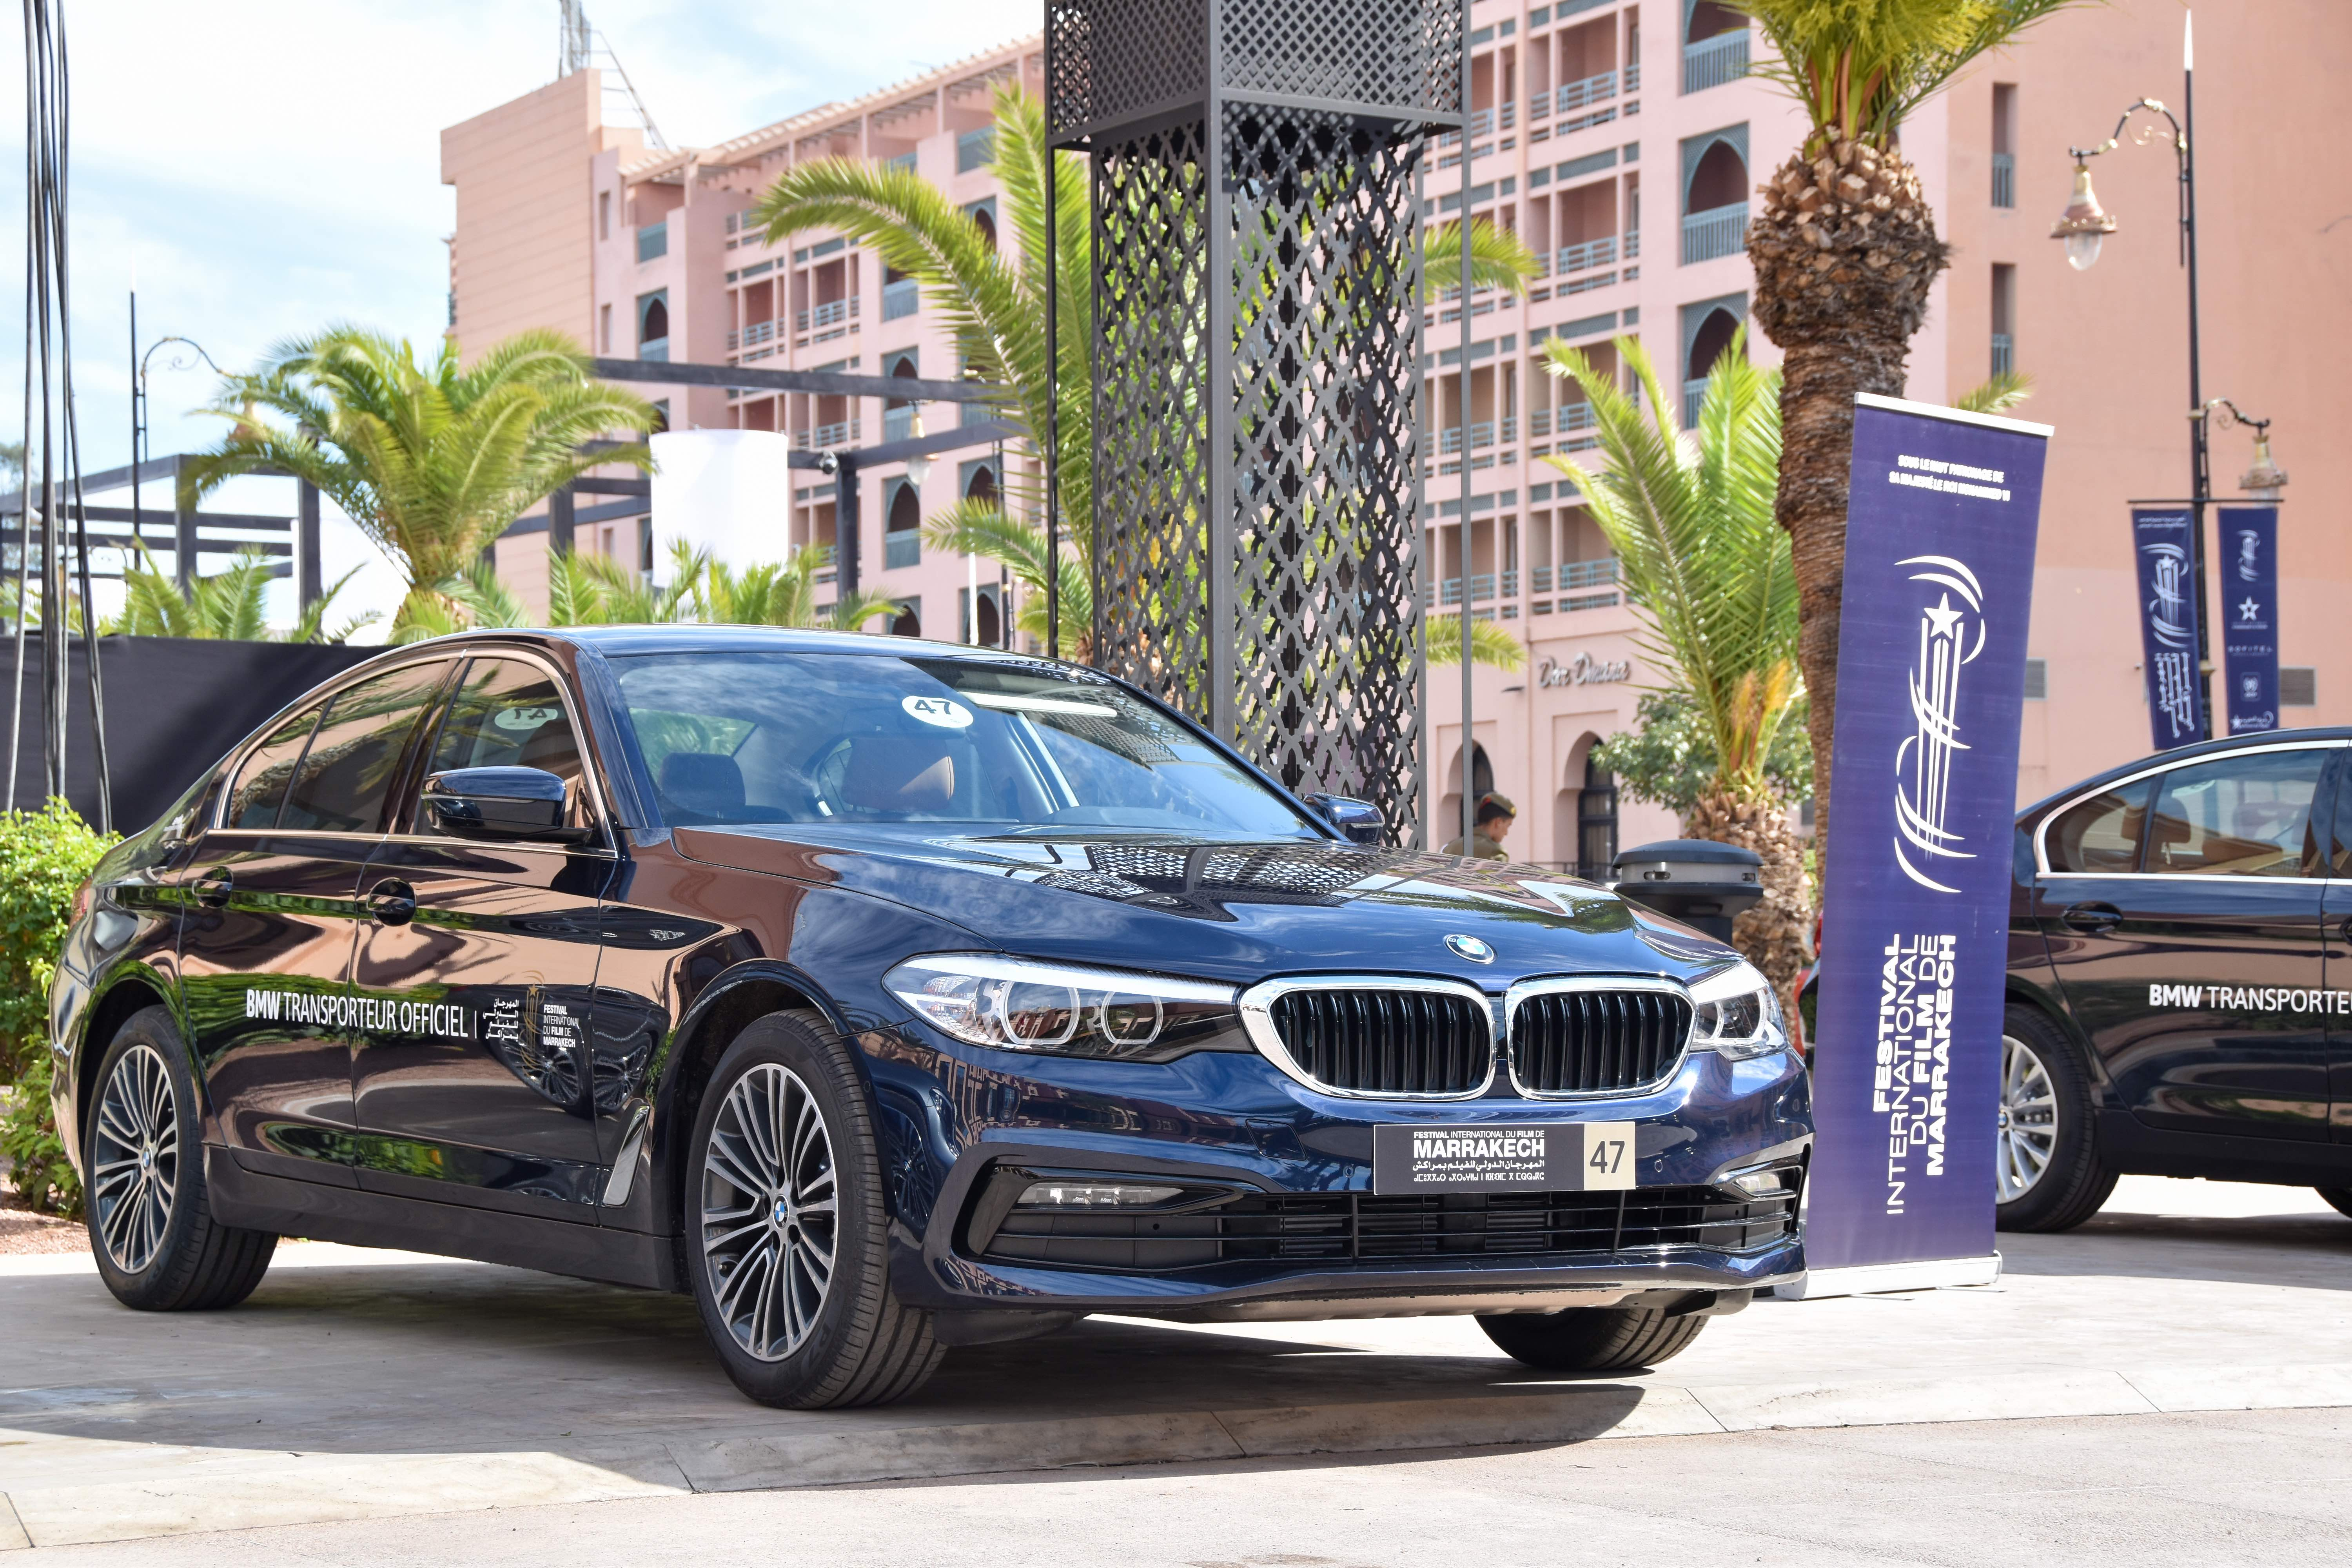 BMW transporteur officiel des stars du FIFM